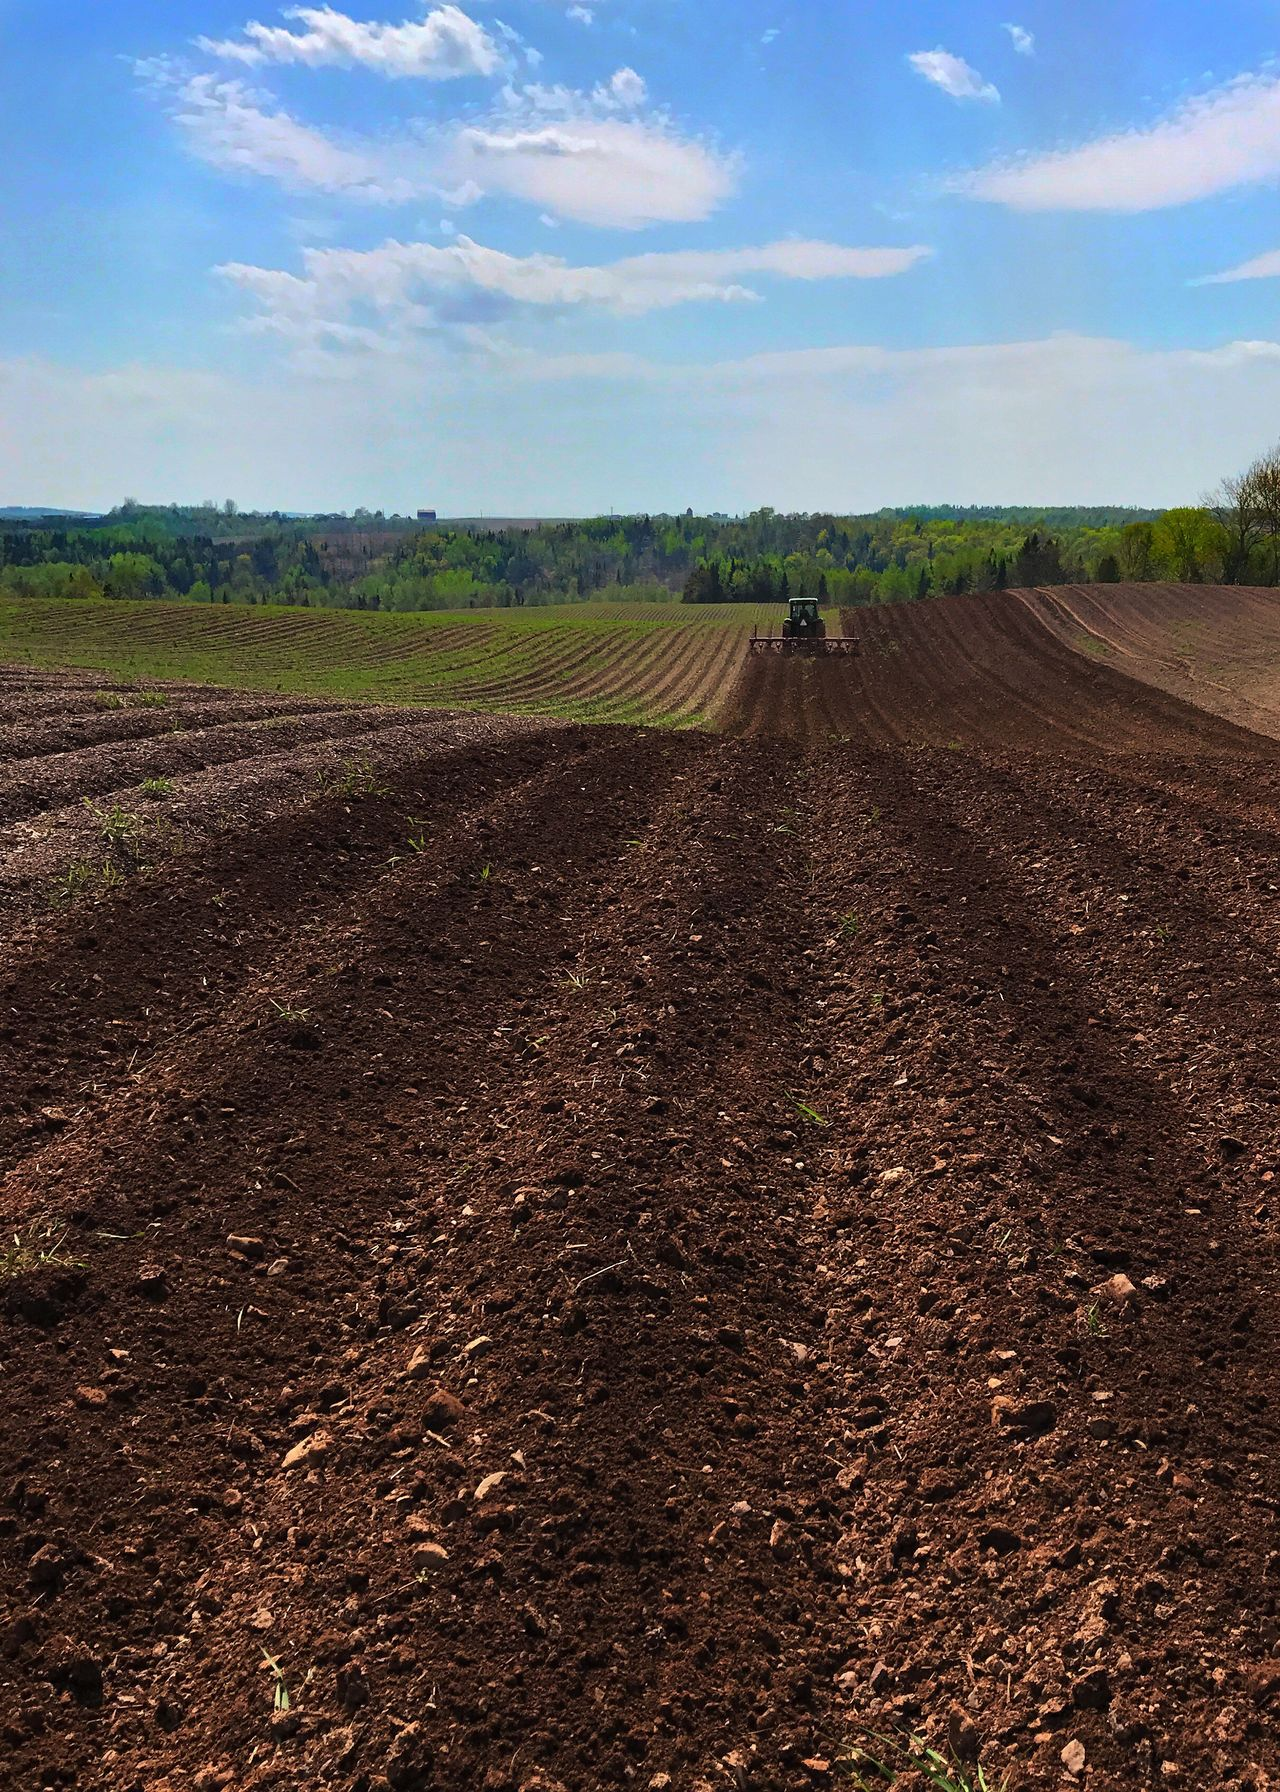 Tractor working in a field. Agriculture Rural Scene Field Landscape Plough Farm Tractor Sky Plowed Field No People Scenics Outdoors Vertical